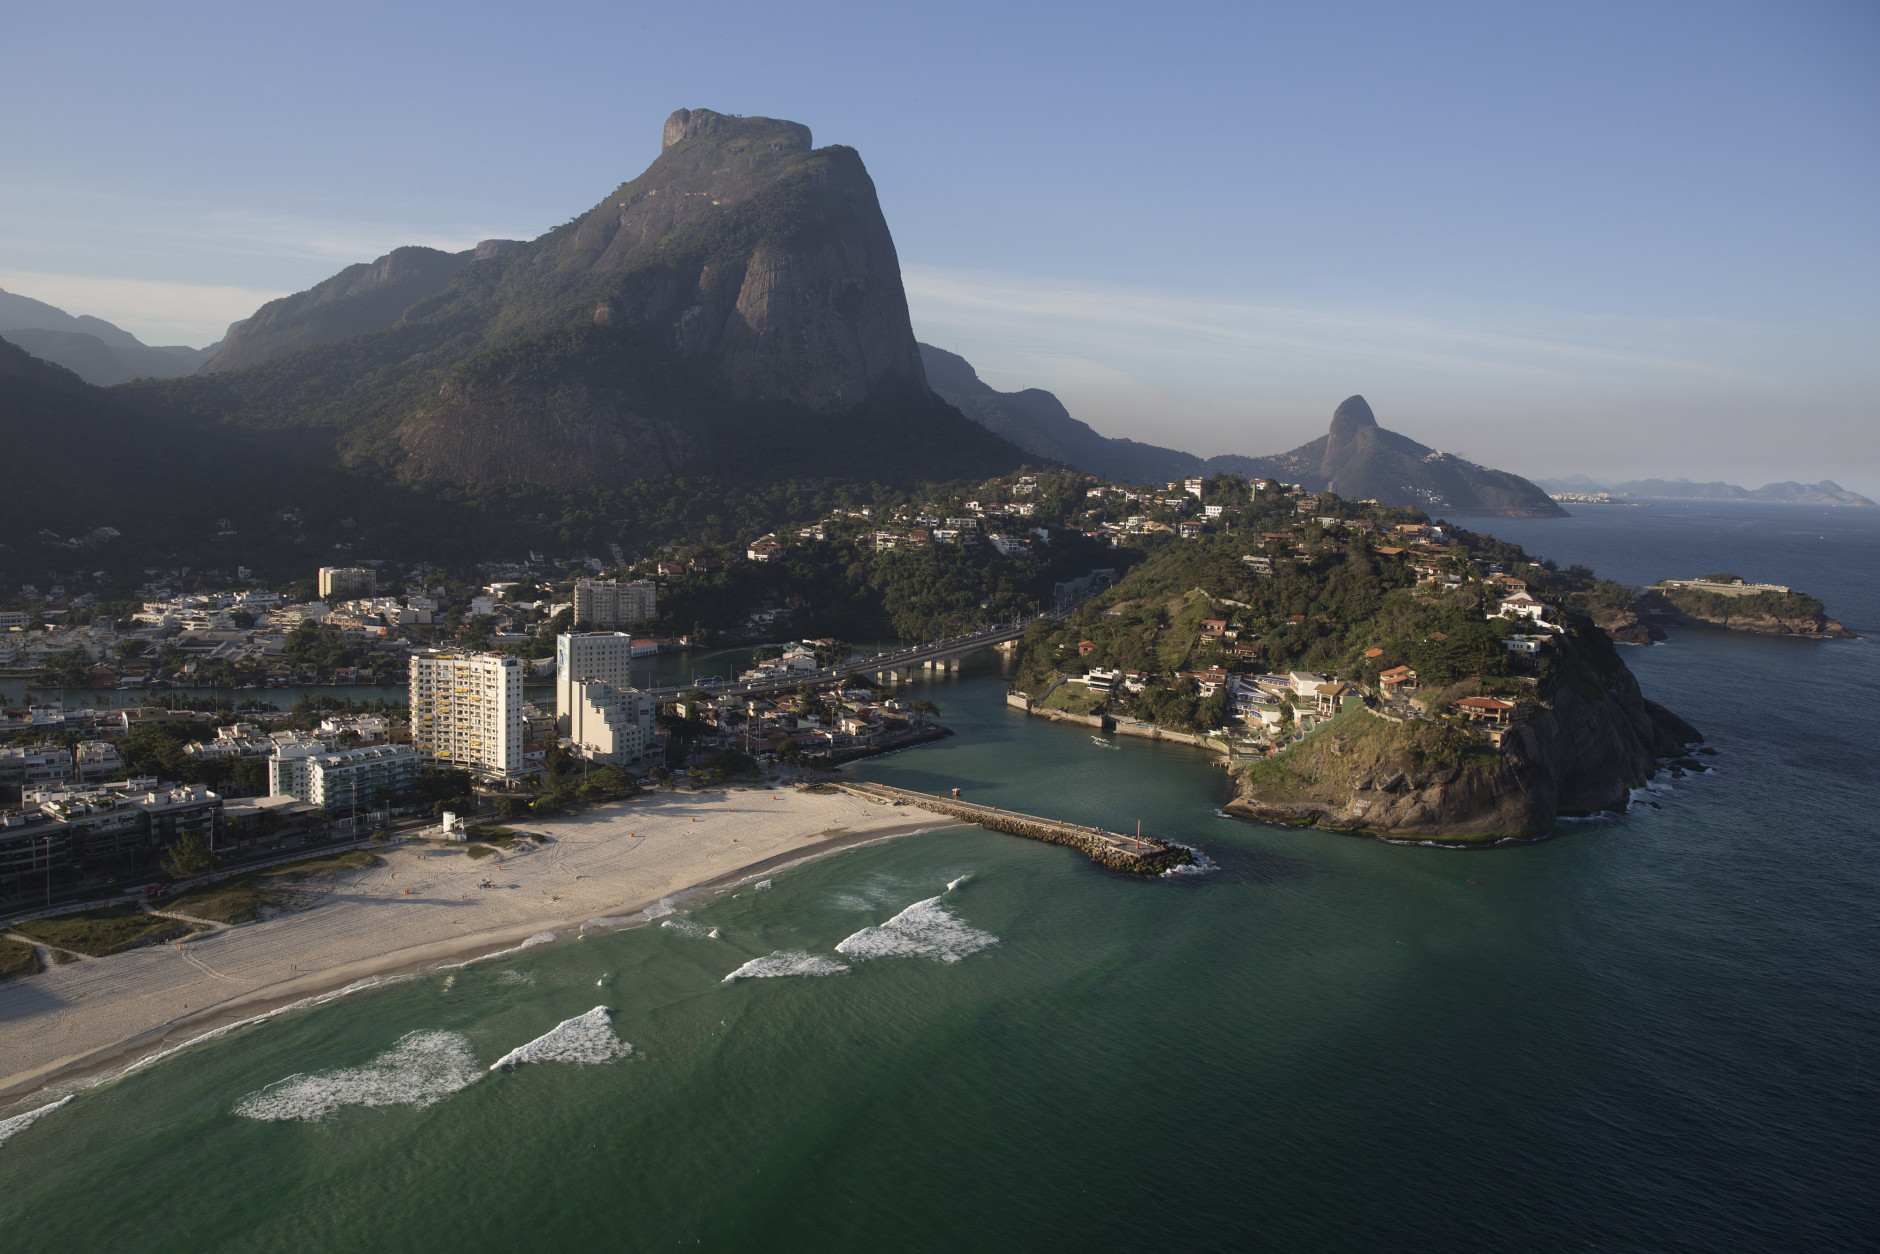 The Barra da Tijuca beach is seen from the air, in Rio de Janeiro, Brazil, Monday, July 4, 2016. With the Olympics set to start on Aug. 5, the games and the city have been overshadowed by security threats, violence, the Zika virus and a national political corruption scandal. (AP Photo/Felipe Dana)